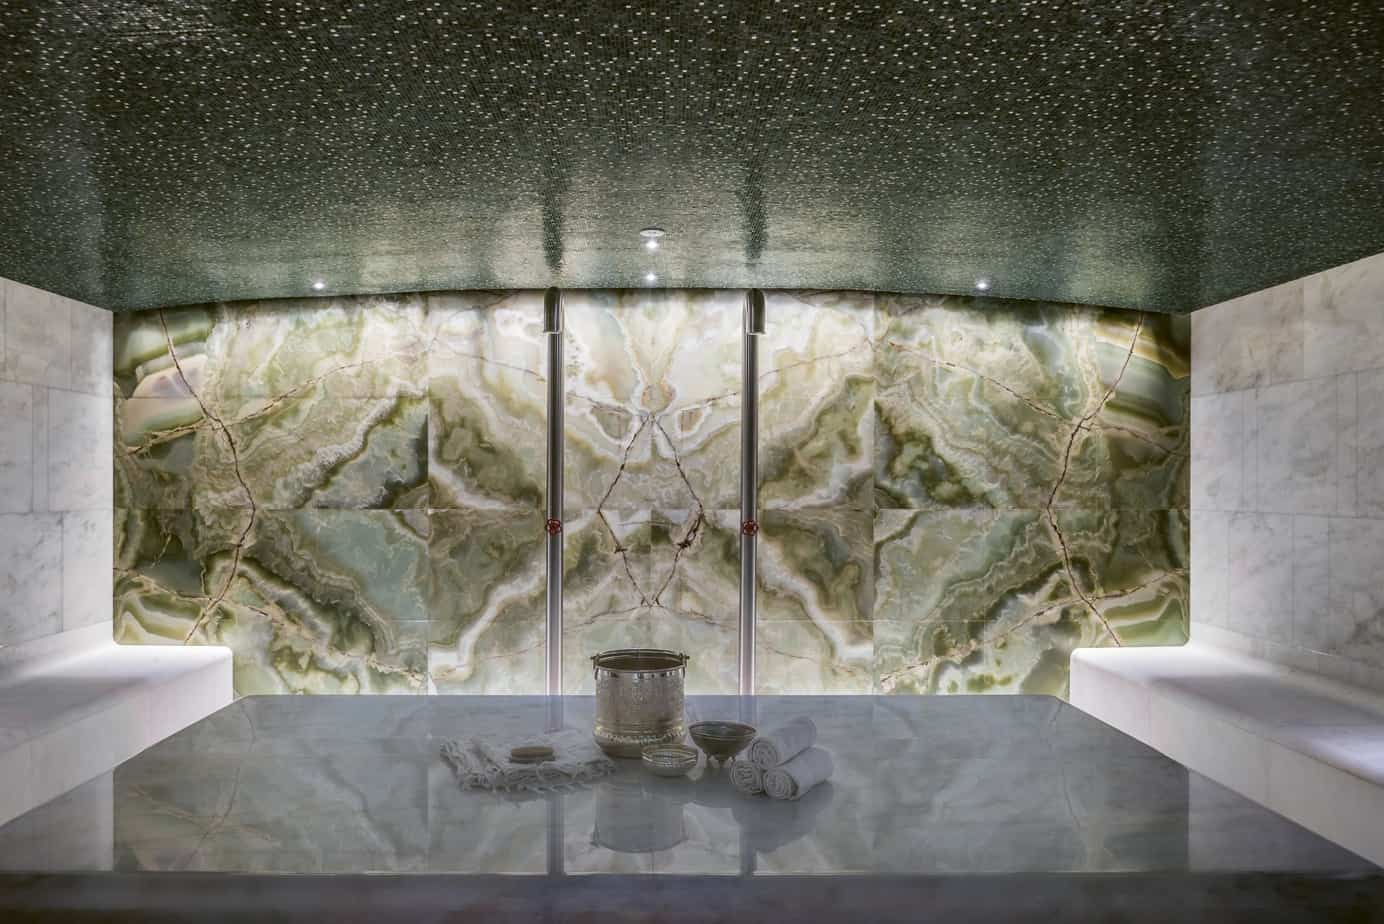 Bvlgari-Resort-Dubai-Spa-Hammam